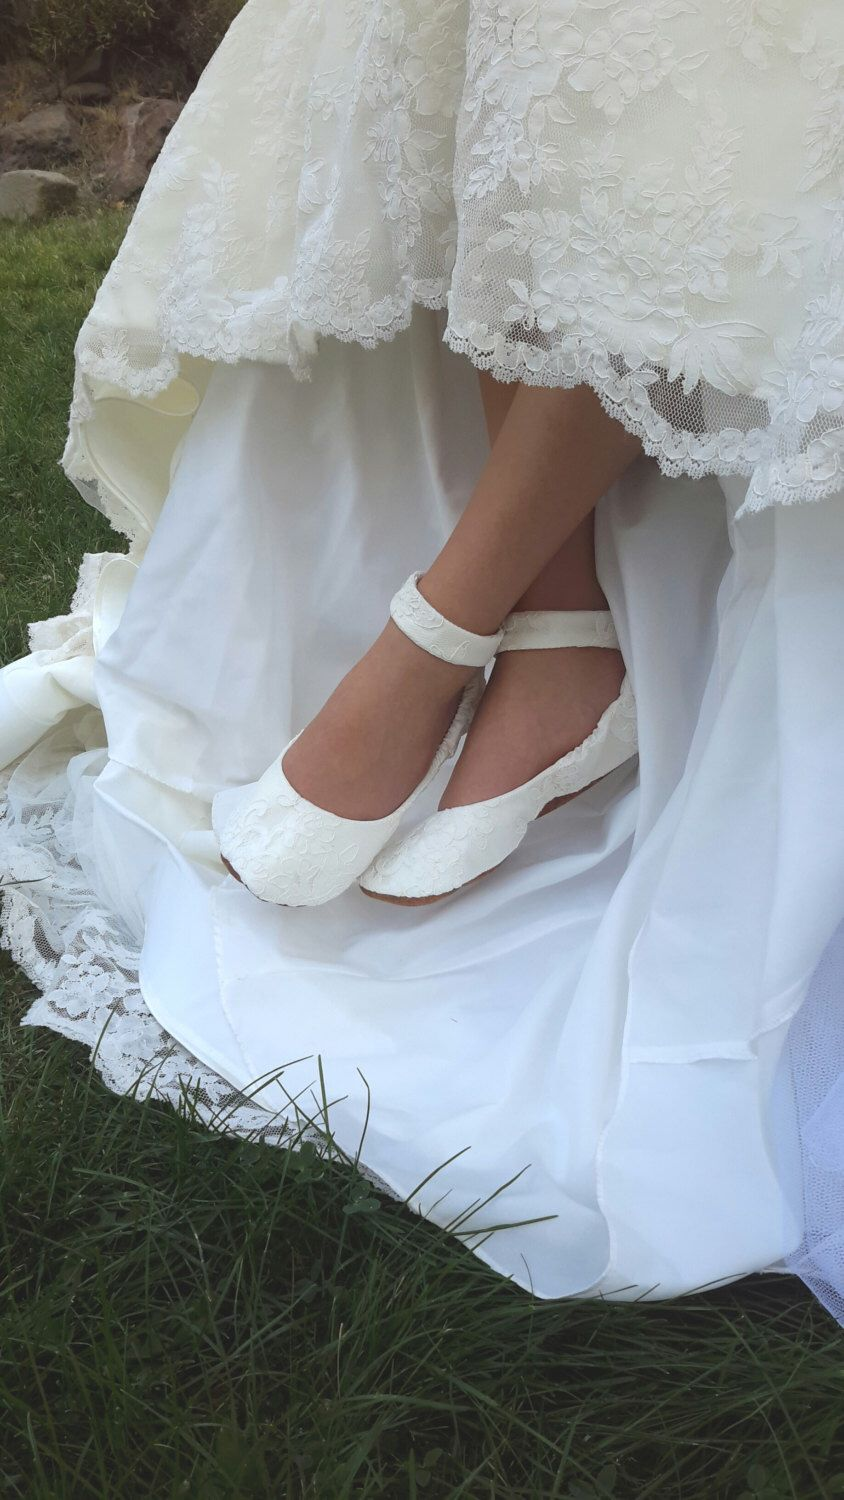 Lace Wedding Shoes with Ankle Strap, Flat Wedding  Shoe, Lace Wedding Shoe, Lace  Bridal Flat Shoe, Bridal Flat Shoe, Ivory Bridal Flat by HopefullyRomantic on Etsy https://www.etsy.com/listing/248370942/lace-wedding-shoes-with-ankle-strap-flat